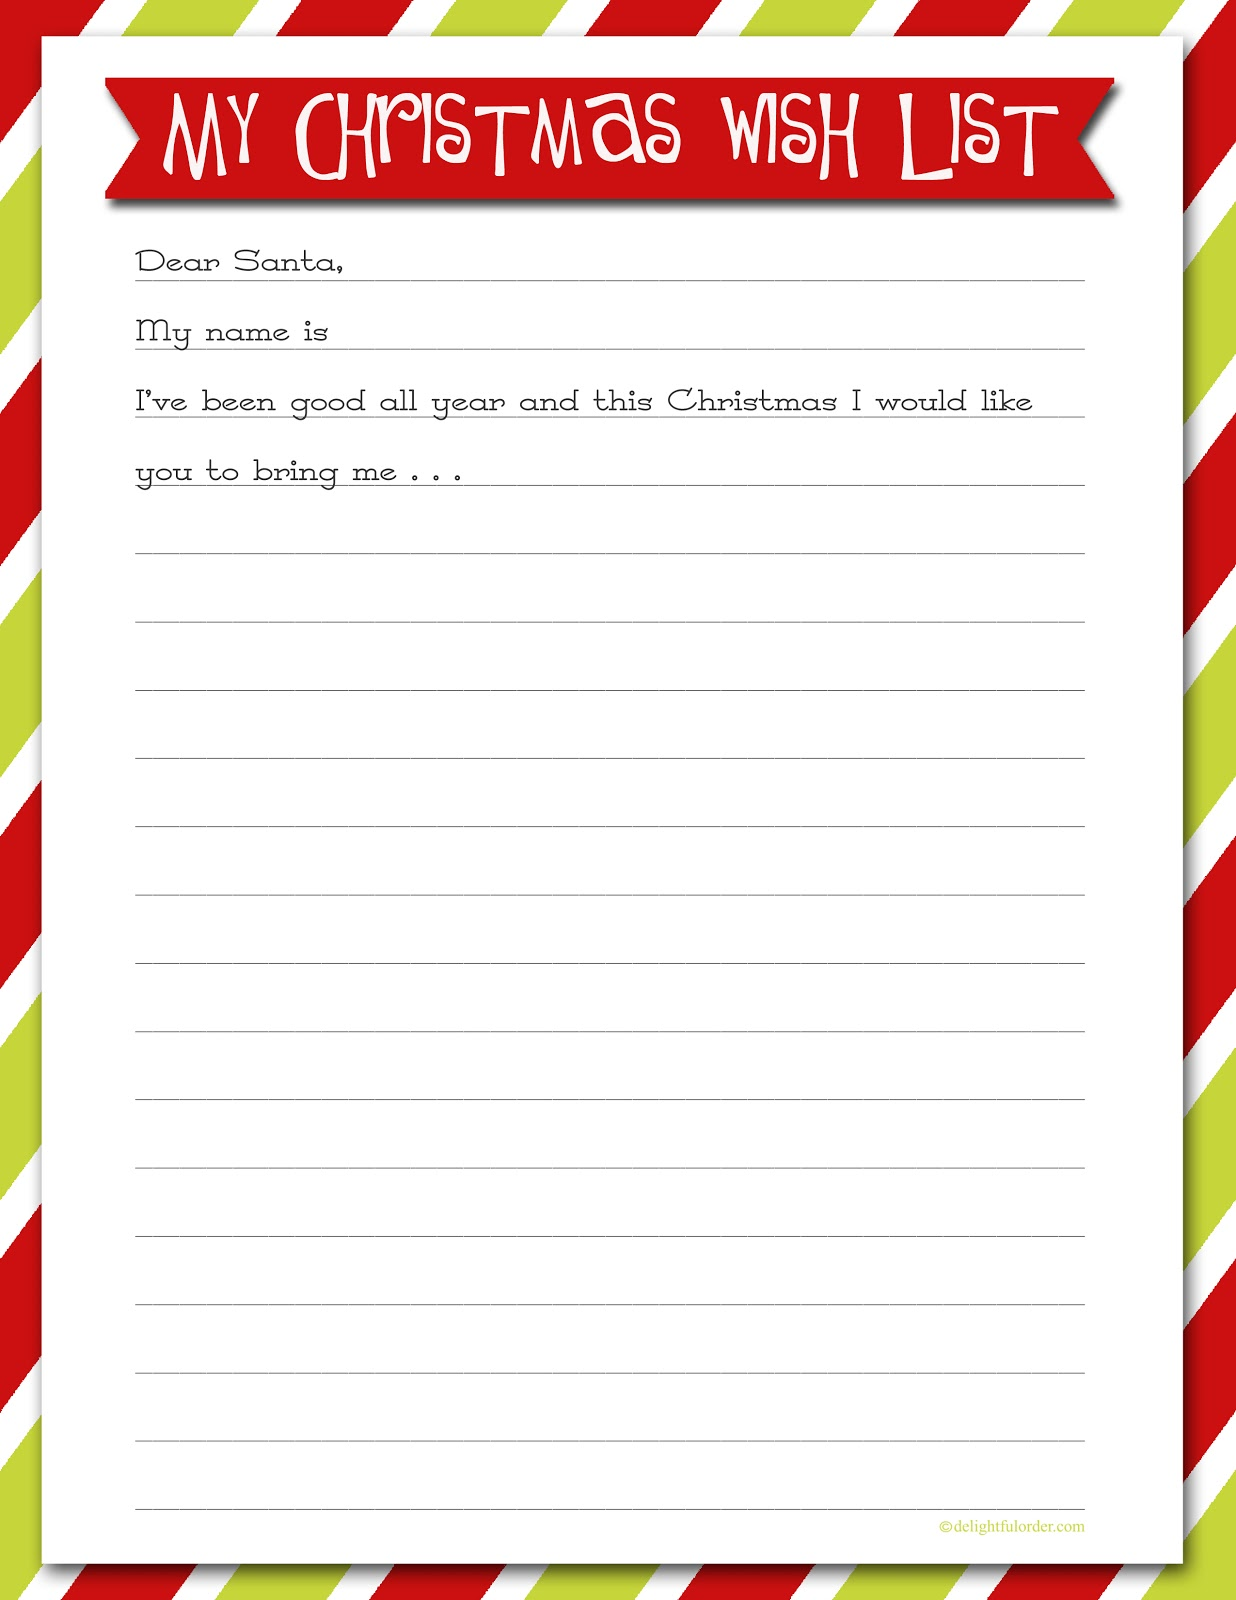 List clipart free svg freeuse stock Free christmas wish list clipart - ClipartFest svg freeuse stock